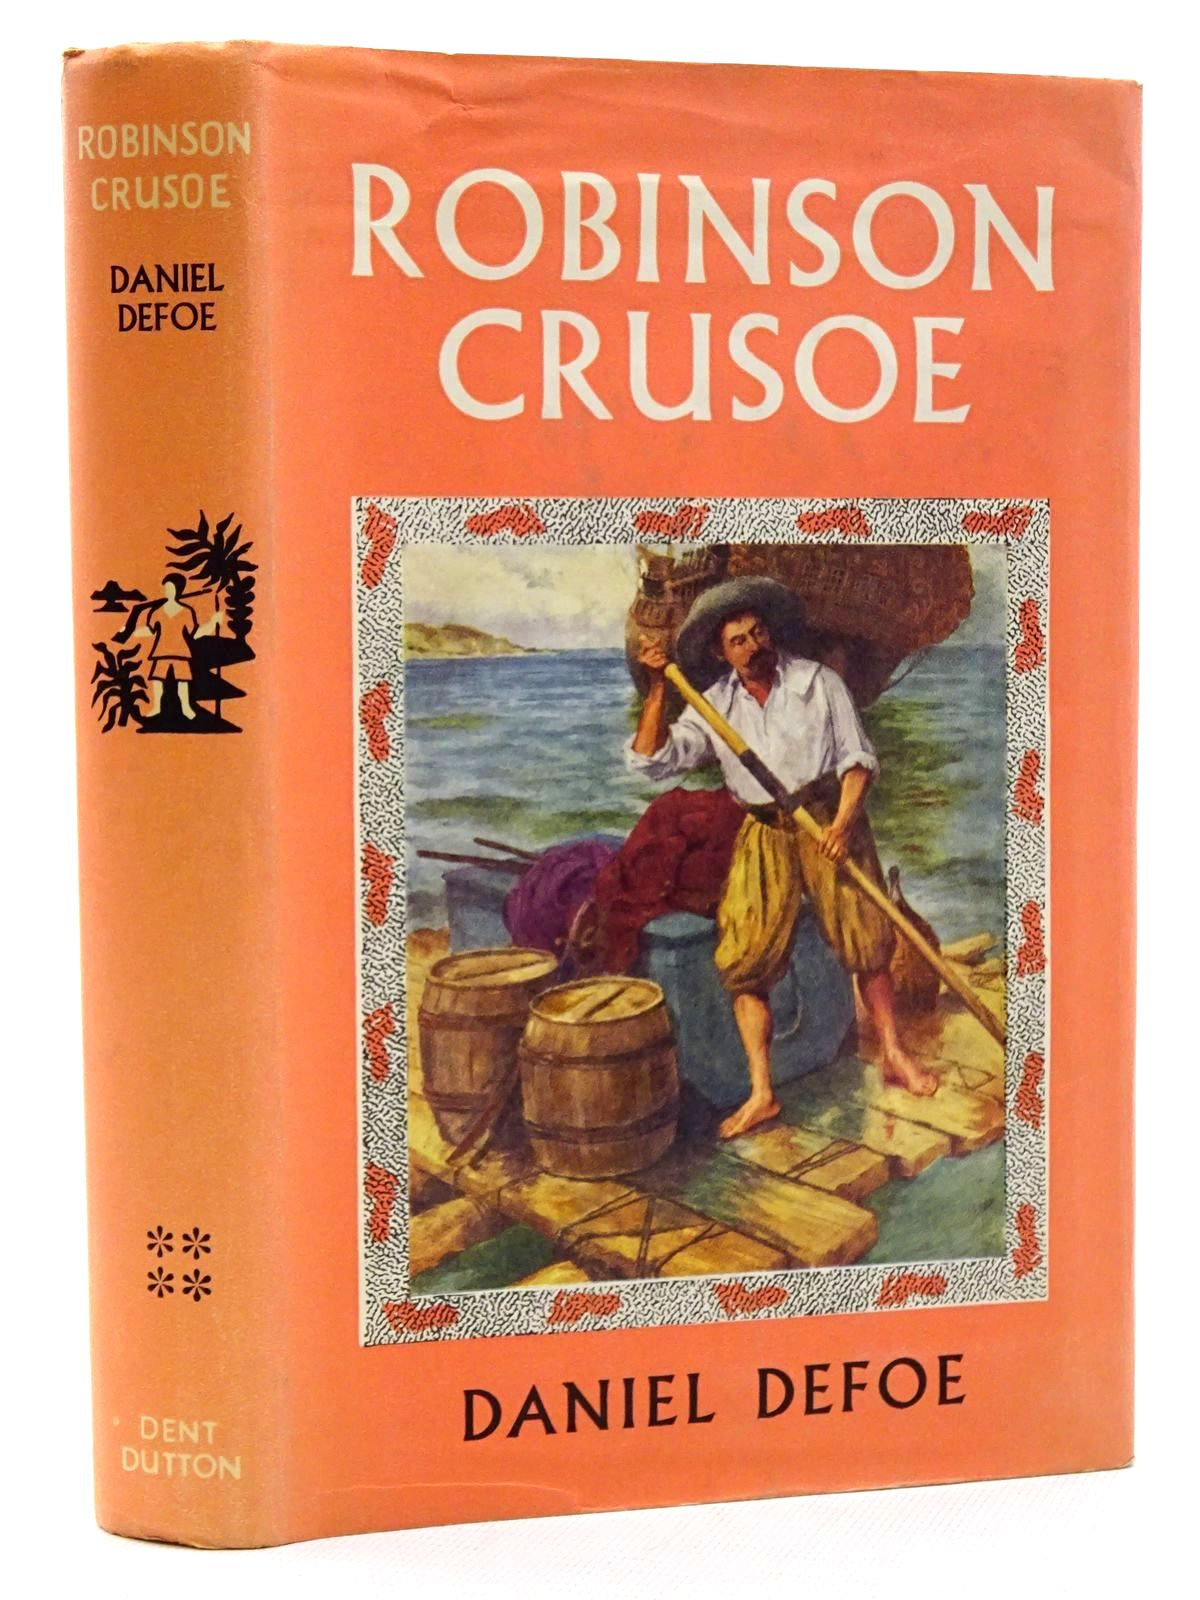 Photo of ROBINSON CRUSOE written by Defoe, Daniel illustrated by Symington, J. Ayton published by J.M. Dent & Sons Ltd. (STOCK CODE: 2125205)  for sale by Stella & Rose's Books